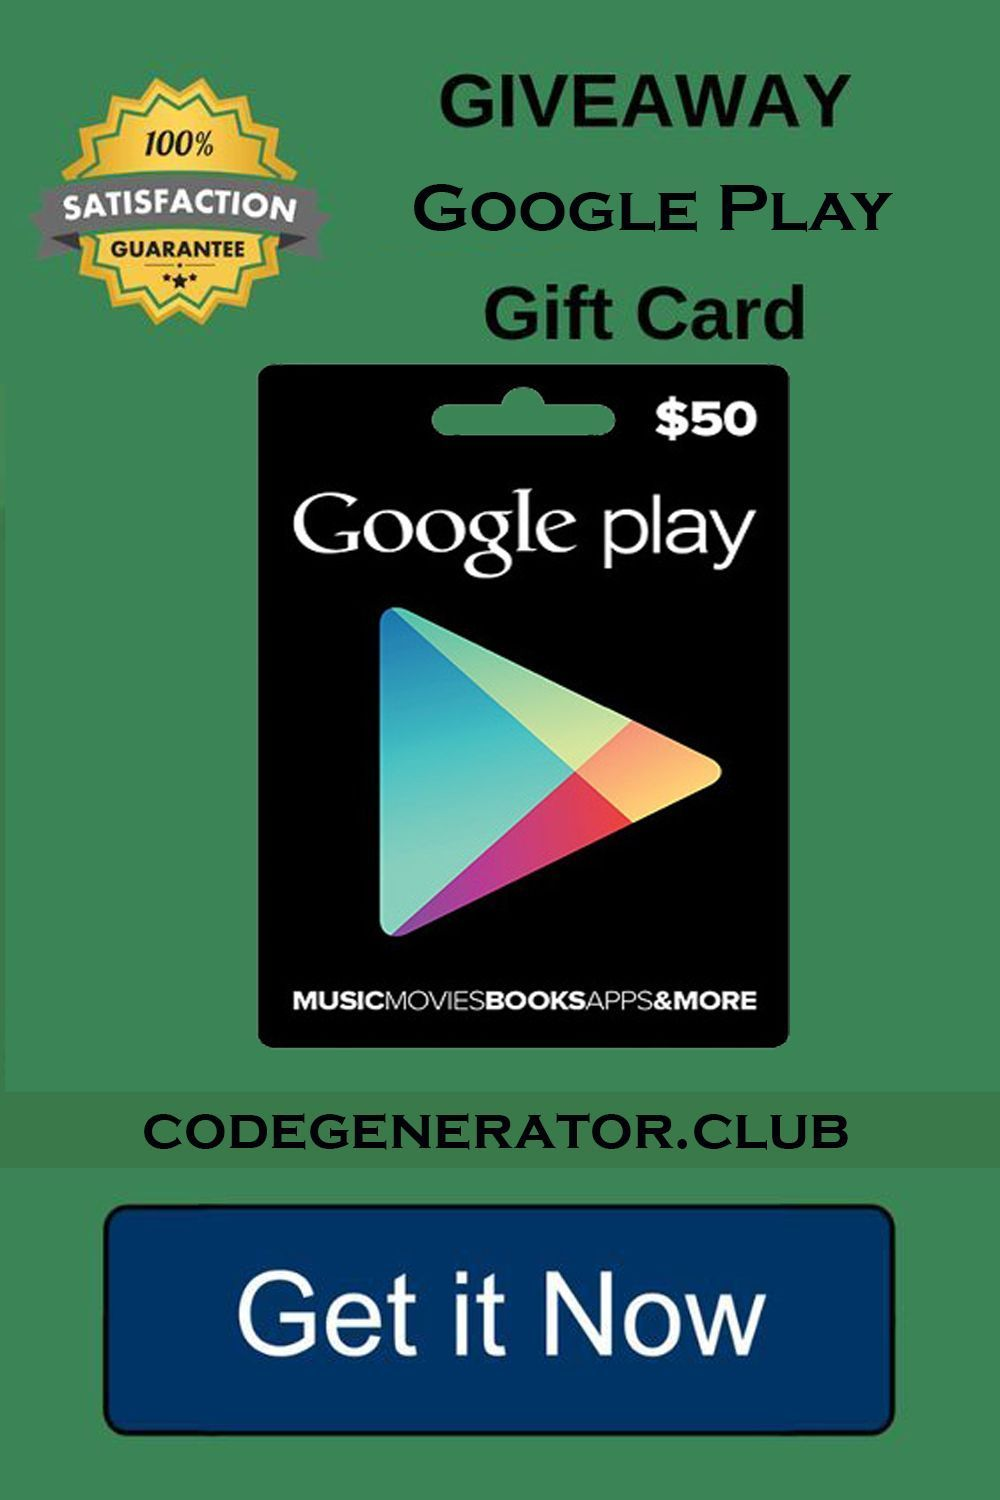 How To Get Redeem Code For Google Play Store Free Google Play Gift Cards In 2021 Google Play Gift Card Amazon Gift Card Free Free Gift Card Generator